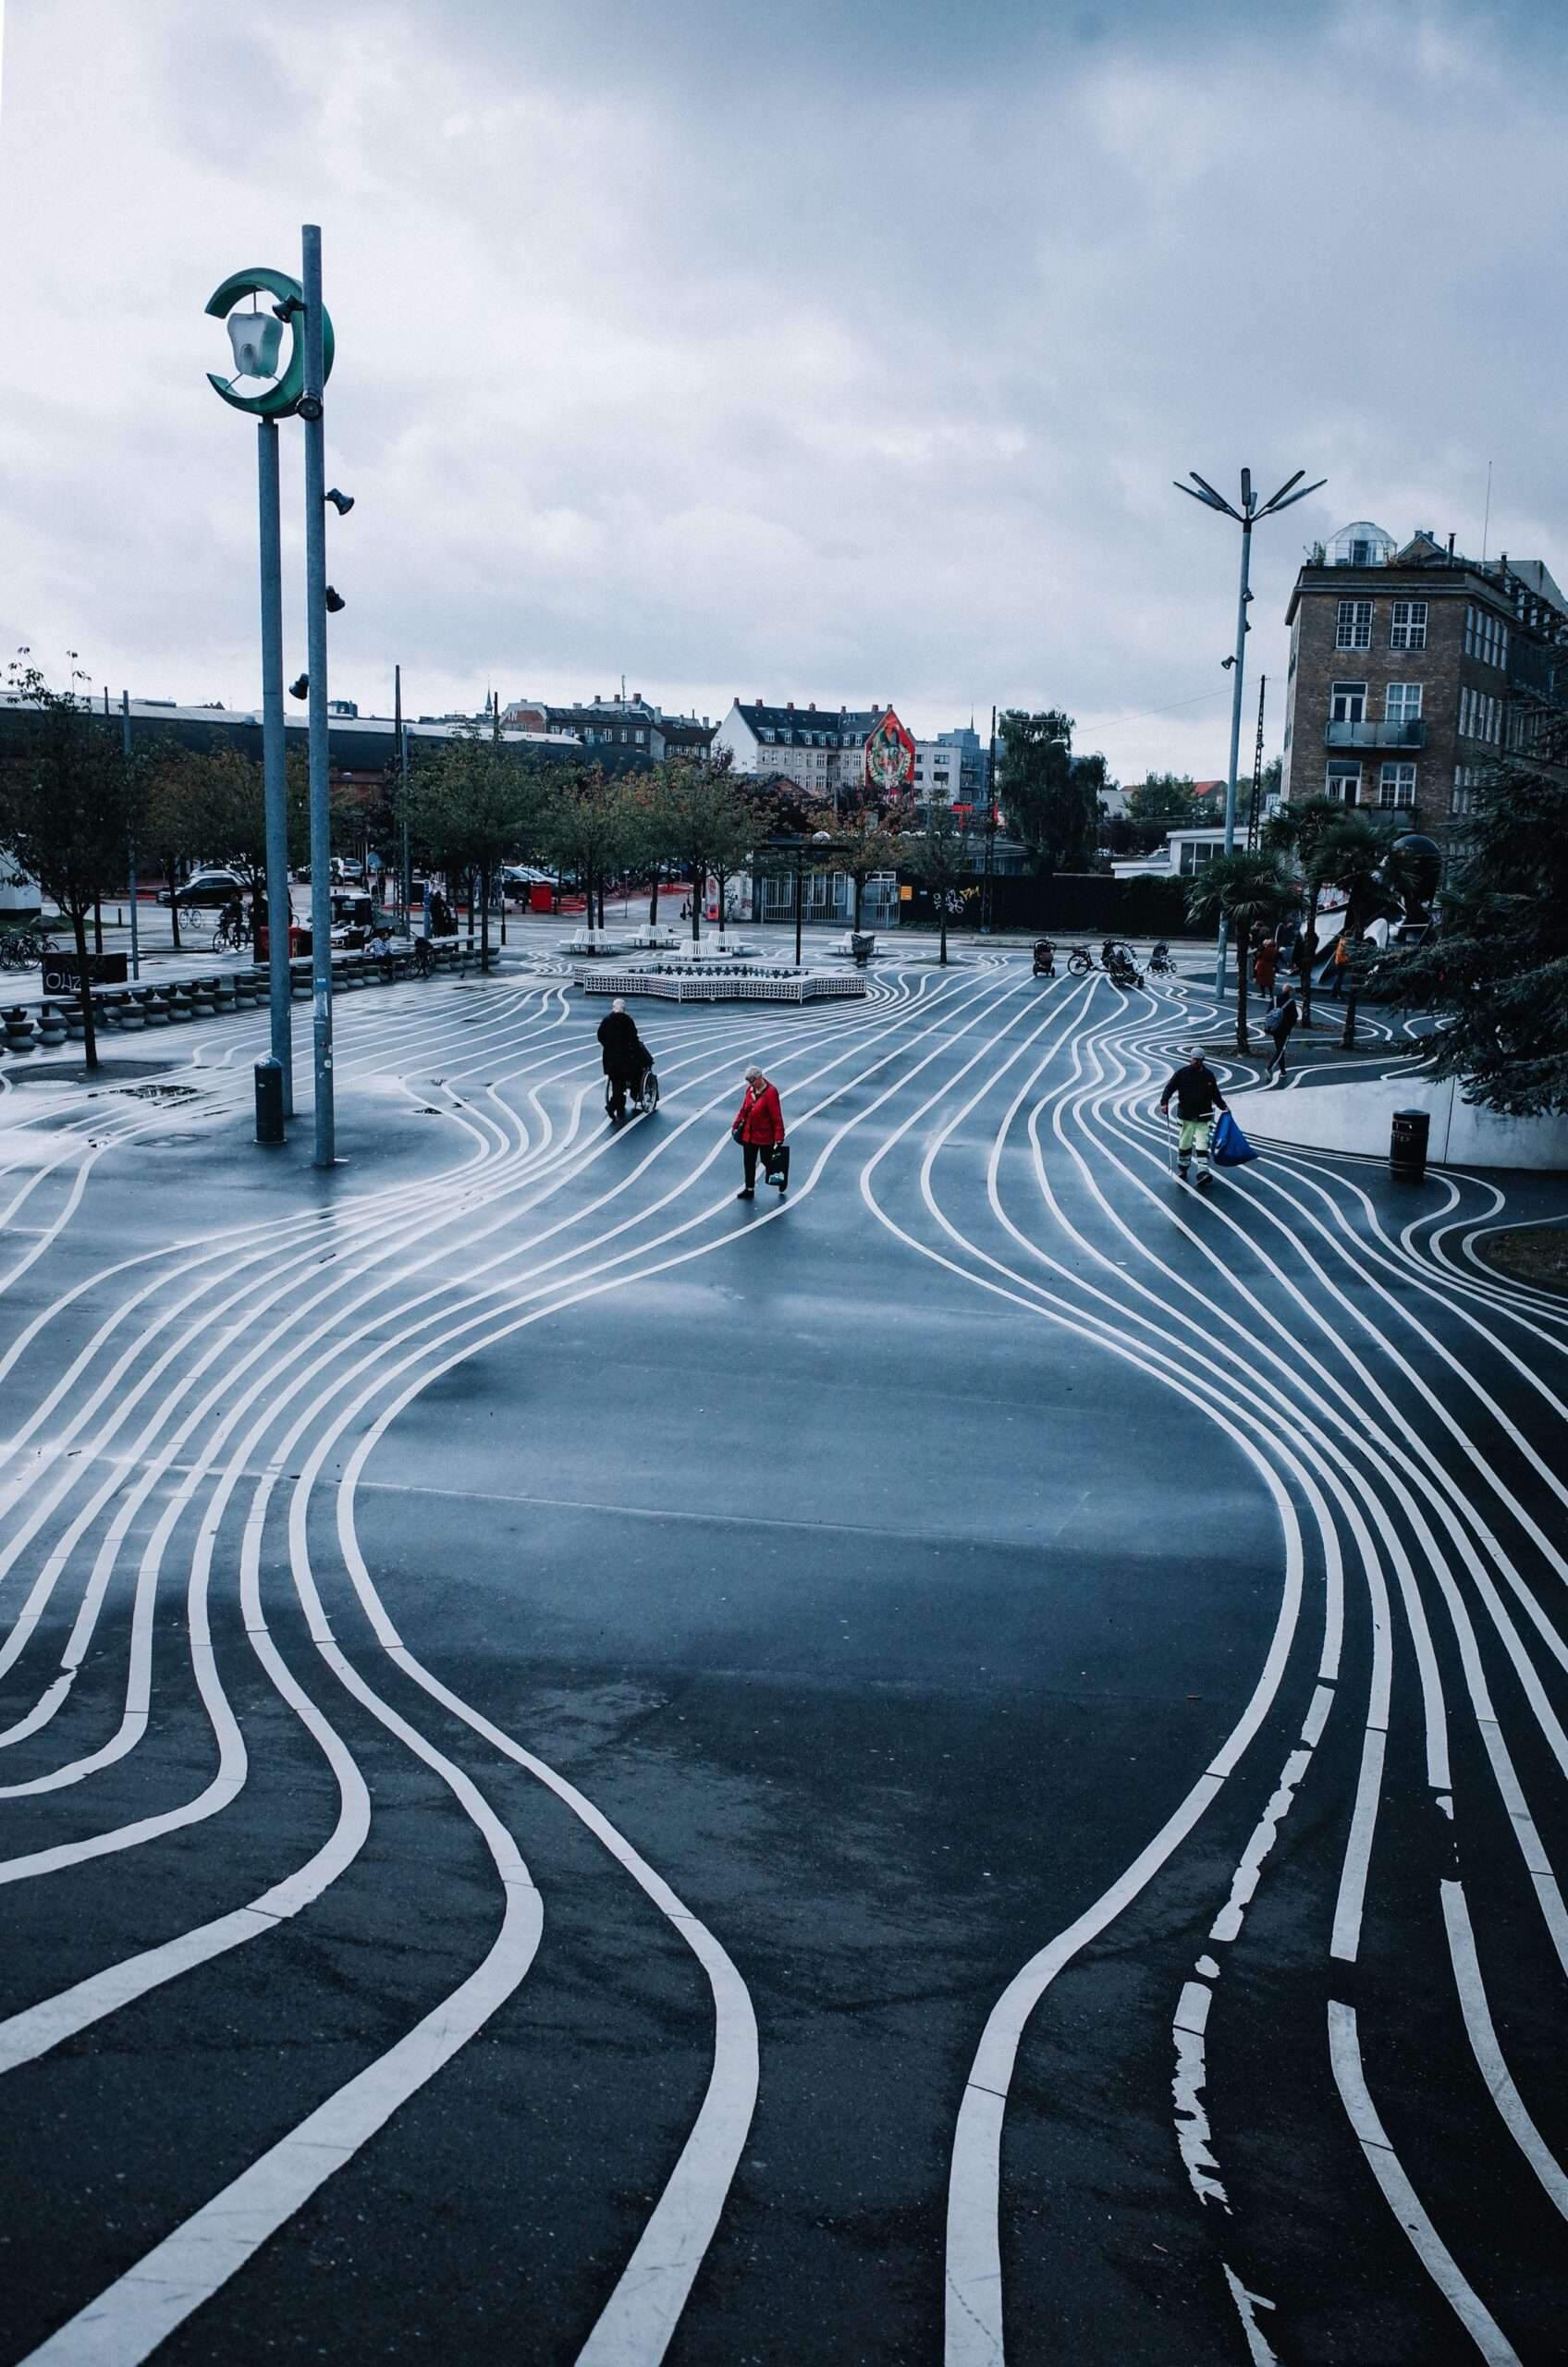 wavy white lines along the dark ground at Superkilen park in Copenhagen